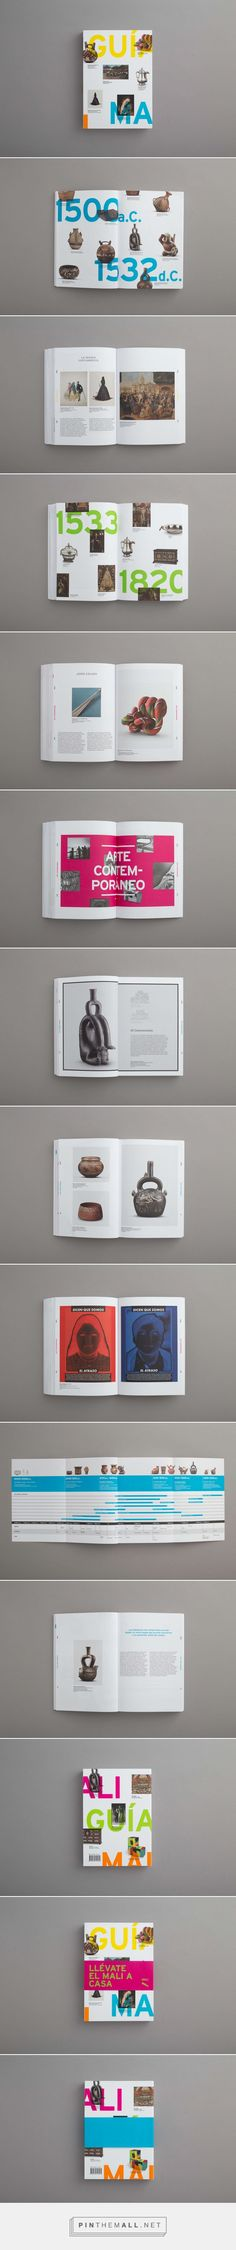 Guía MALI - Museo de Arte de Lima on Behance... - a grouped images picture - Pin Them All